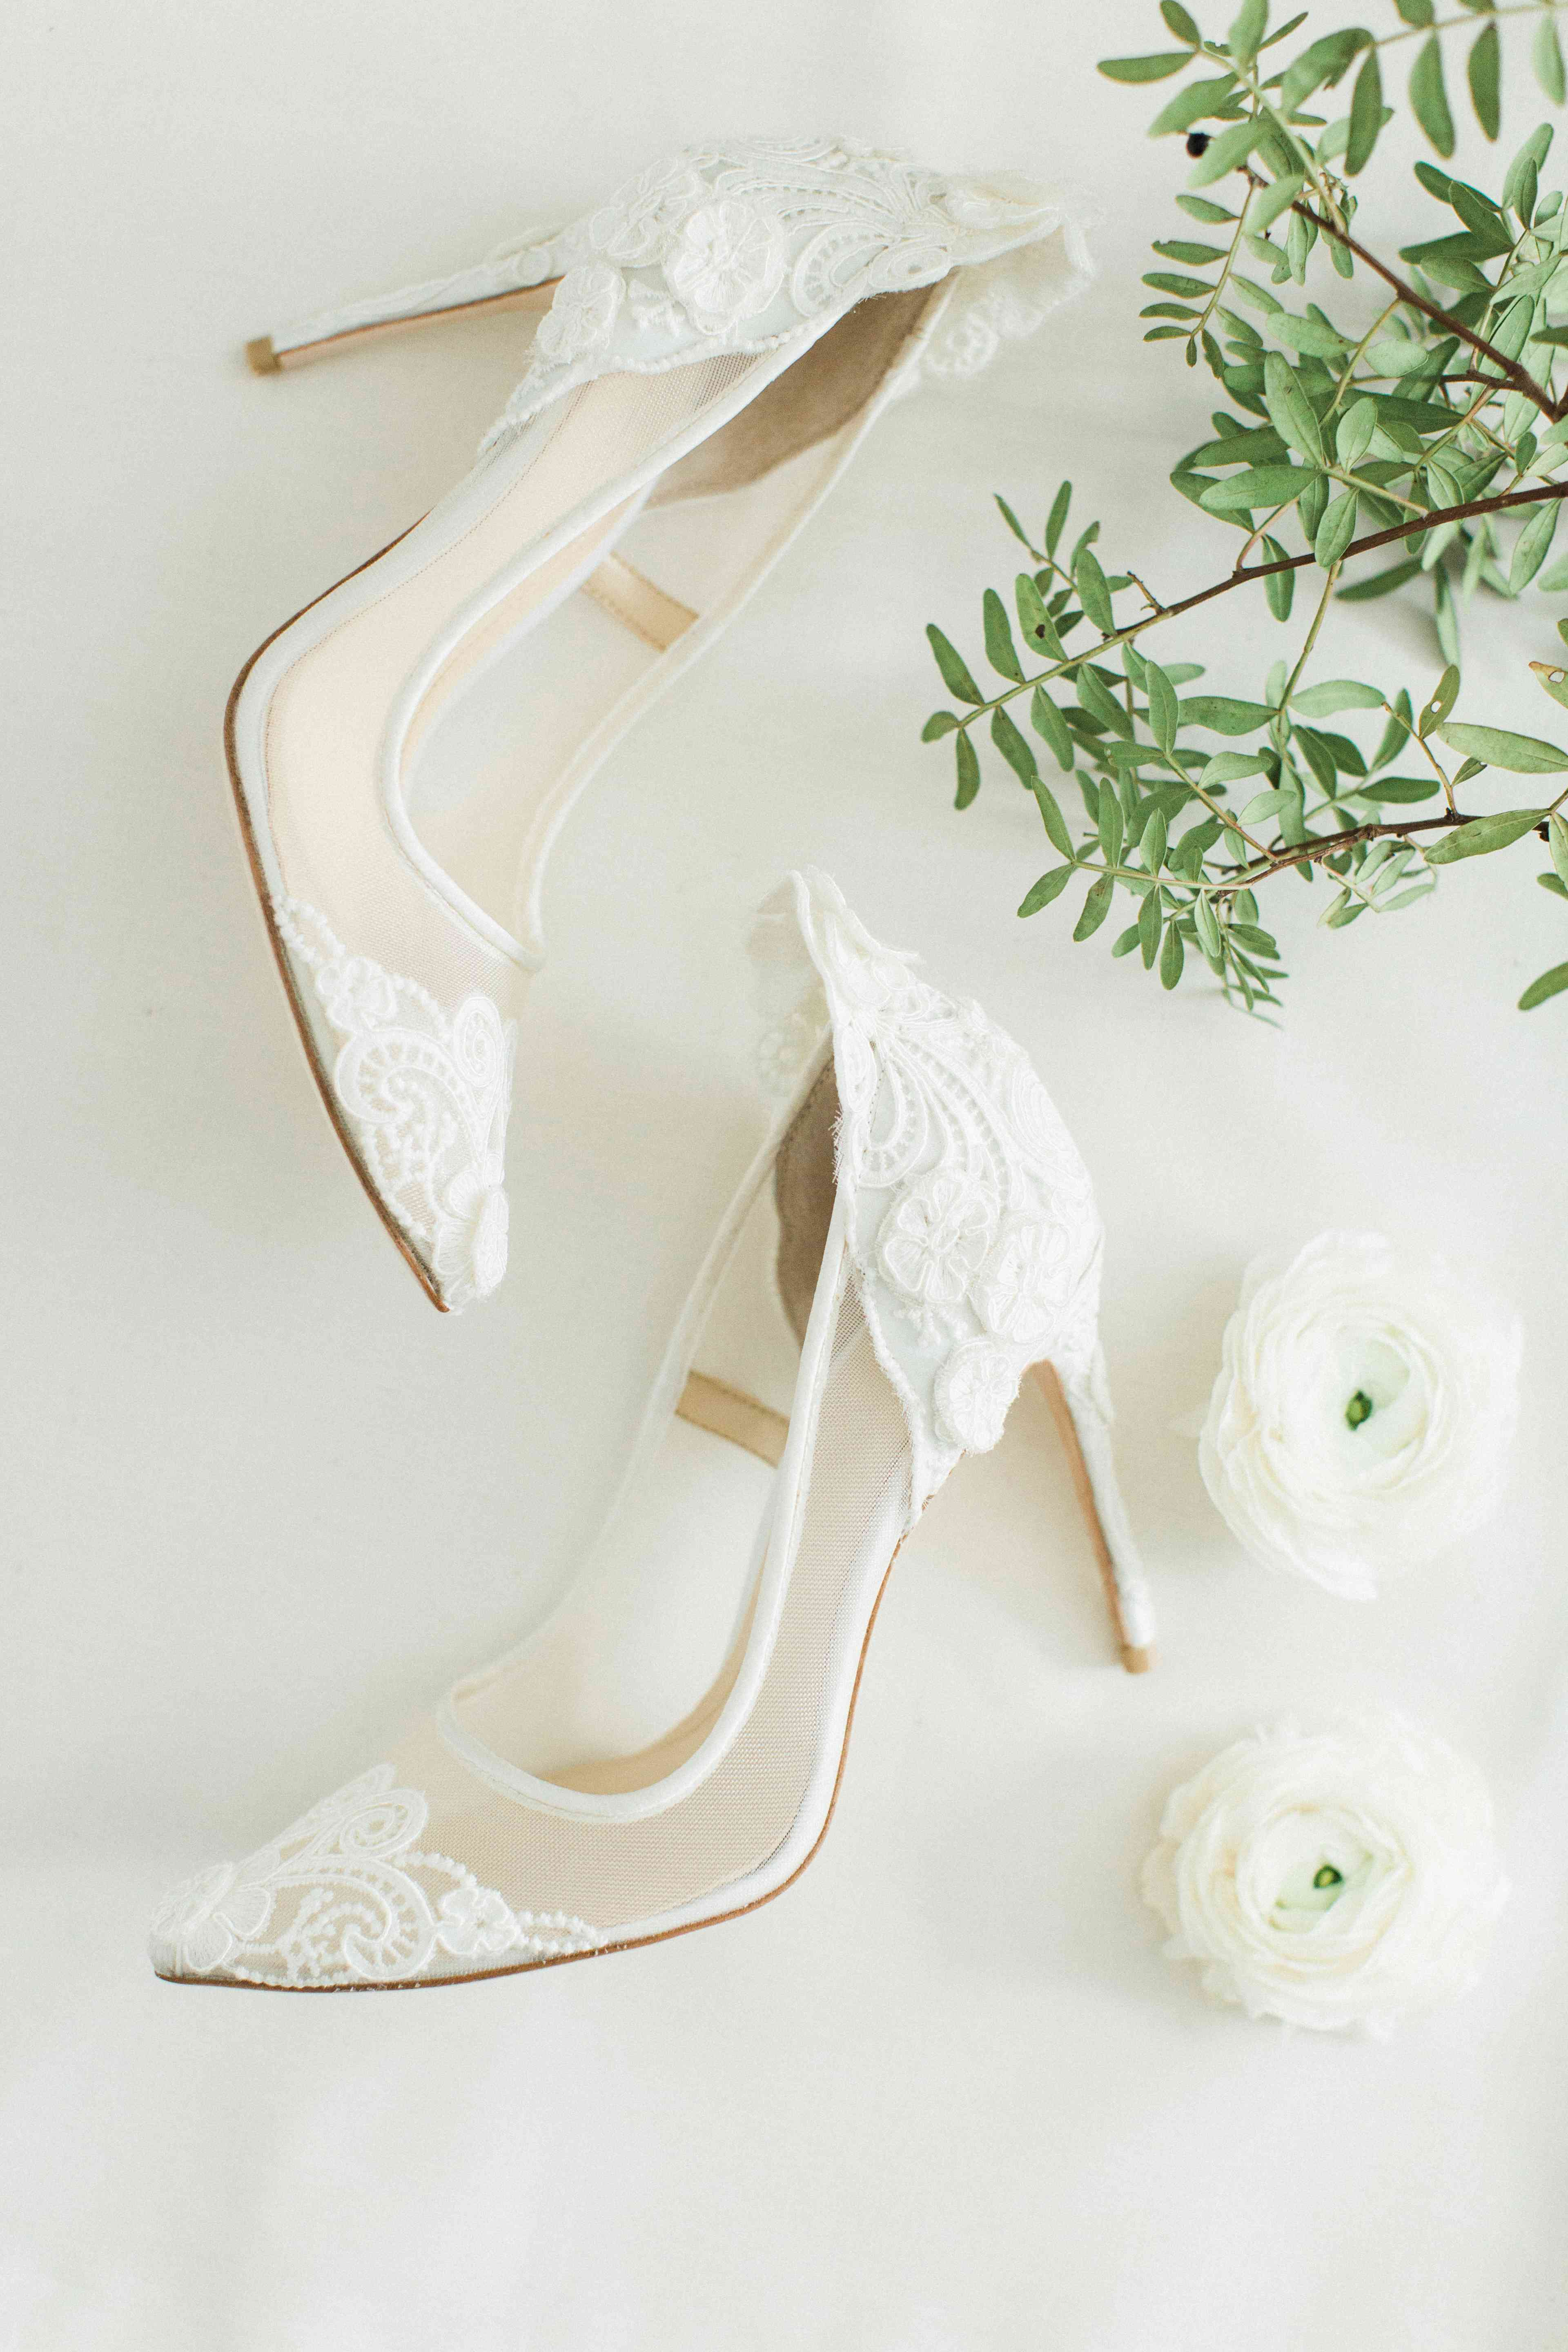 A pair of of white lace pumps.